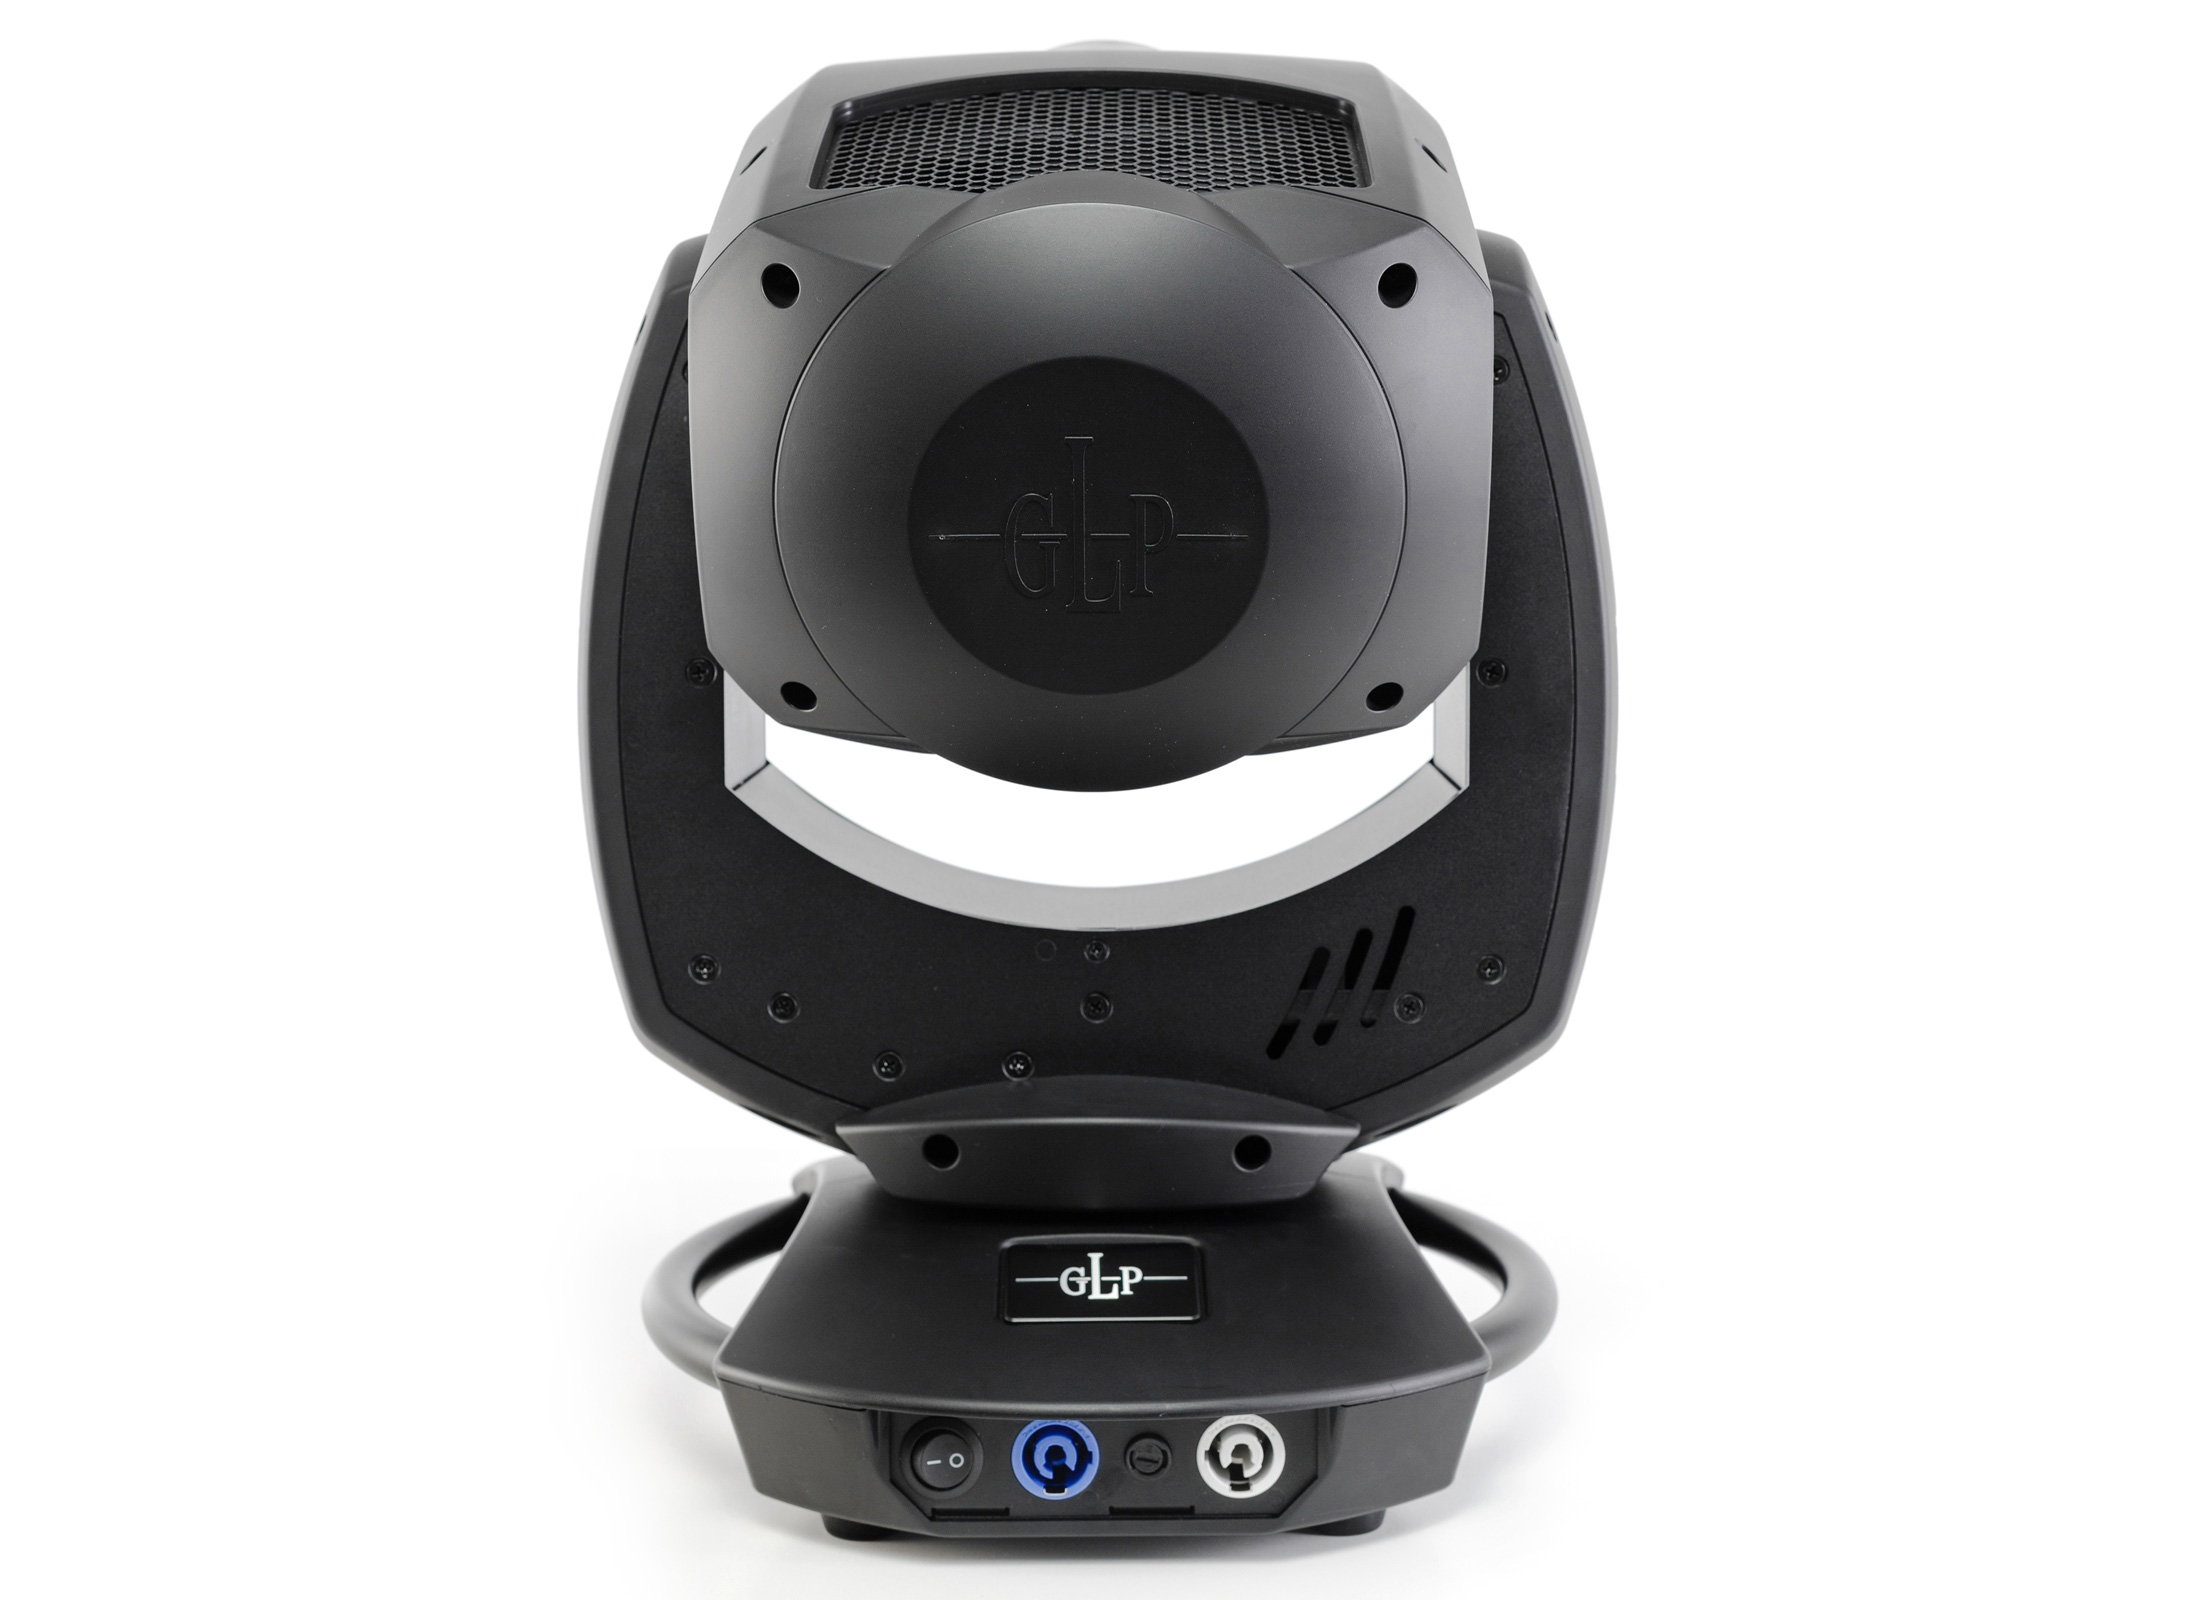 glp volkslicht spot led moving head schwarz g nstig online kaufen bei huss licht ton. Black Bedroom Furniture Sets. Home Design Ideas